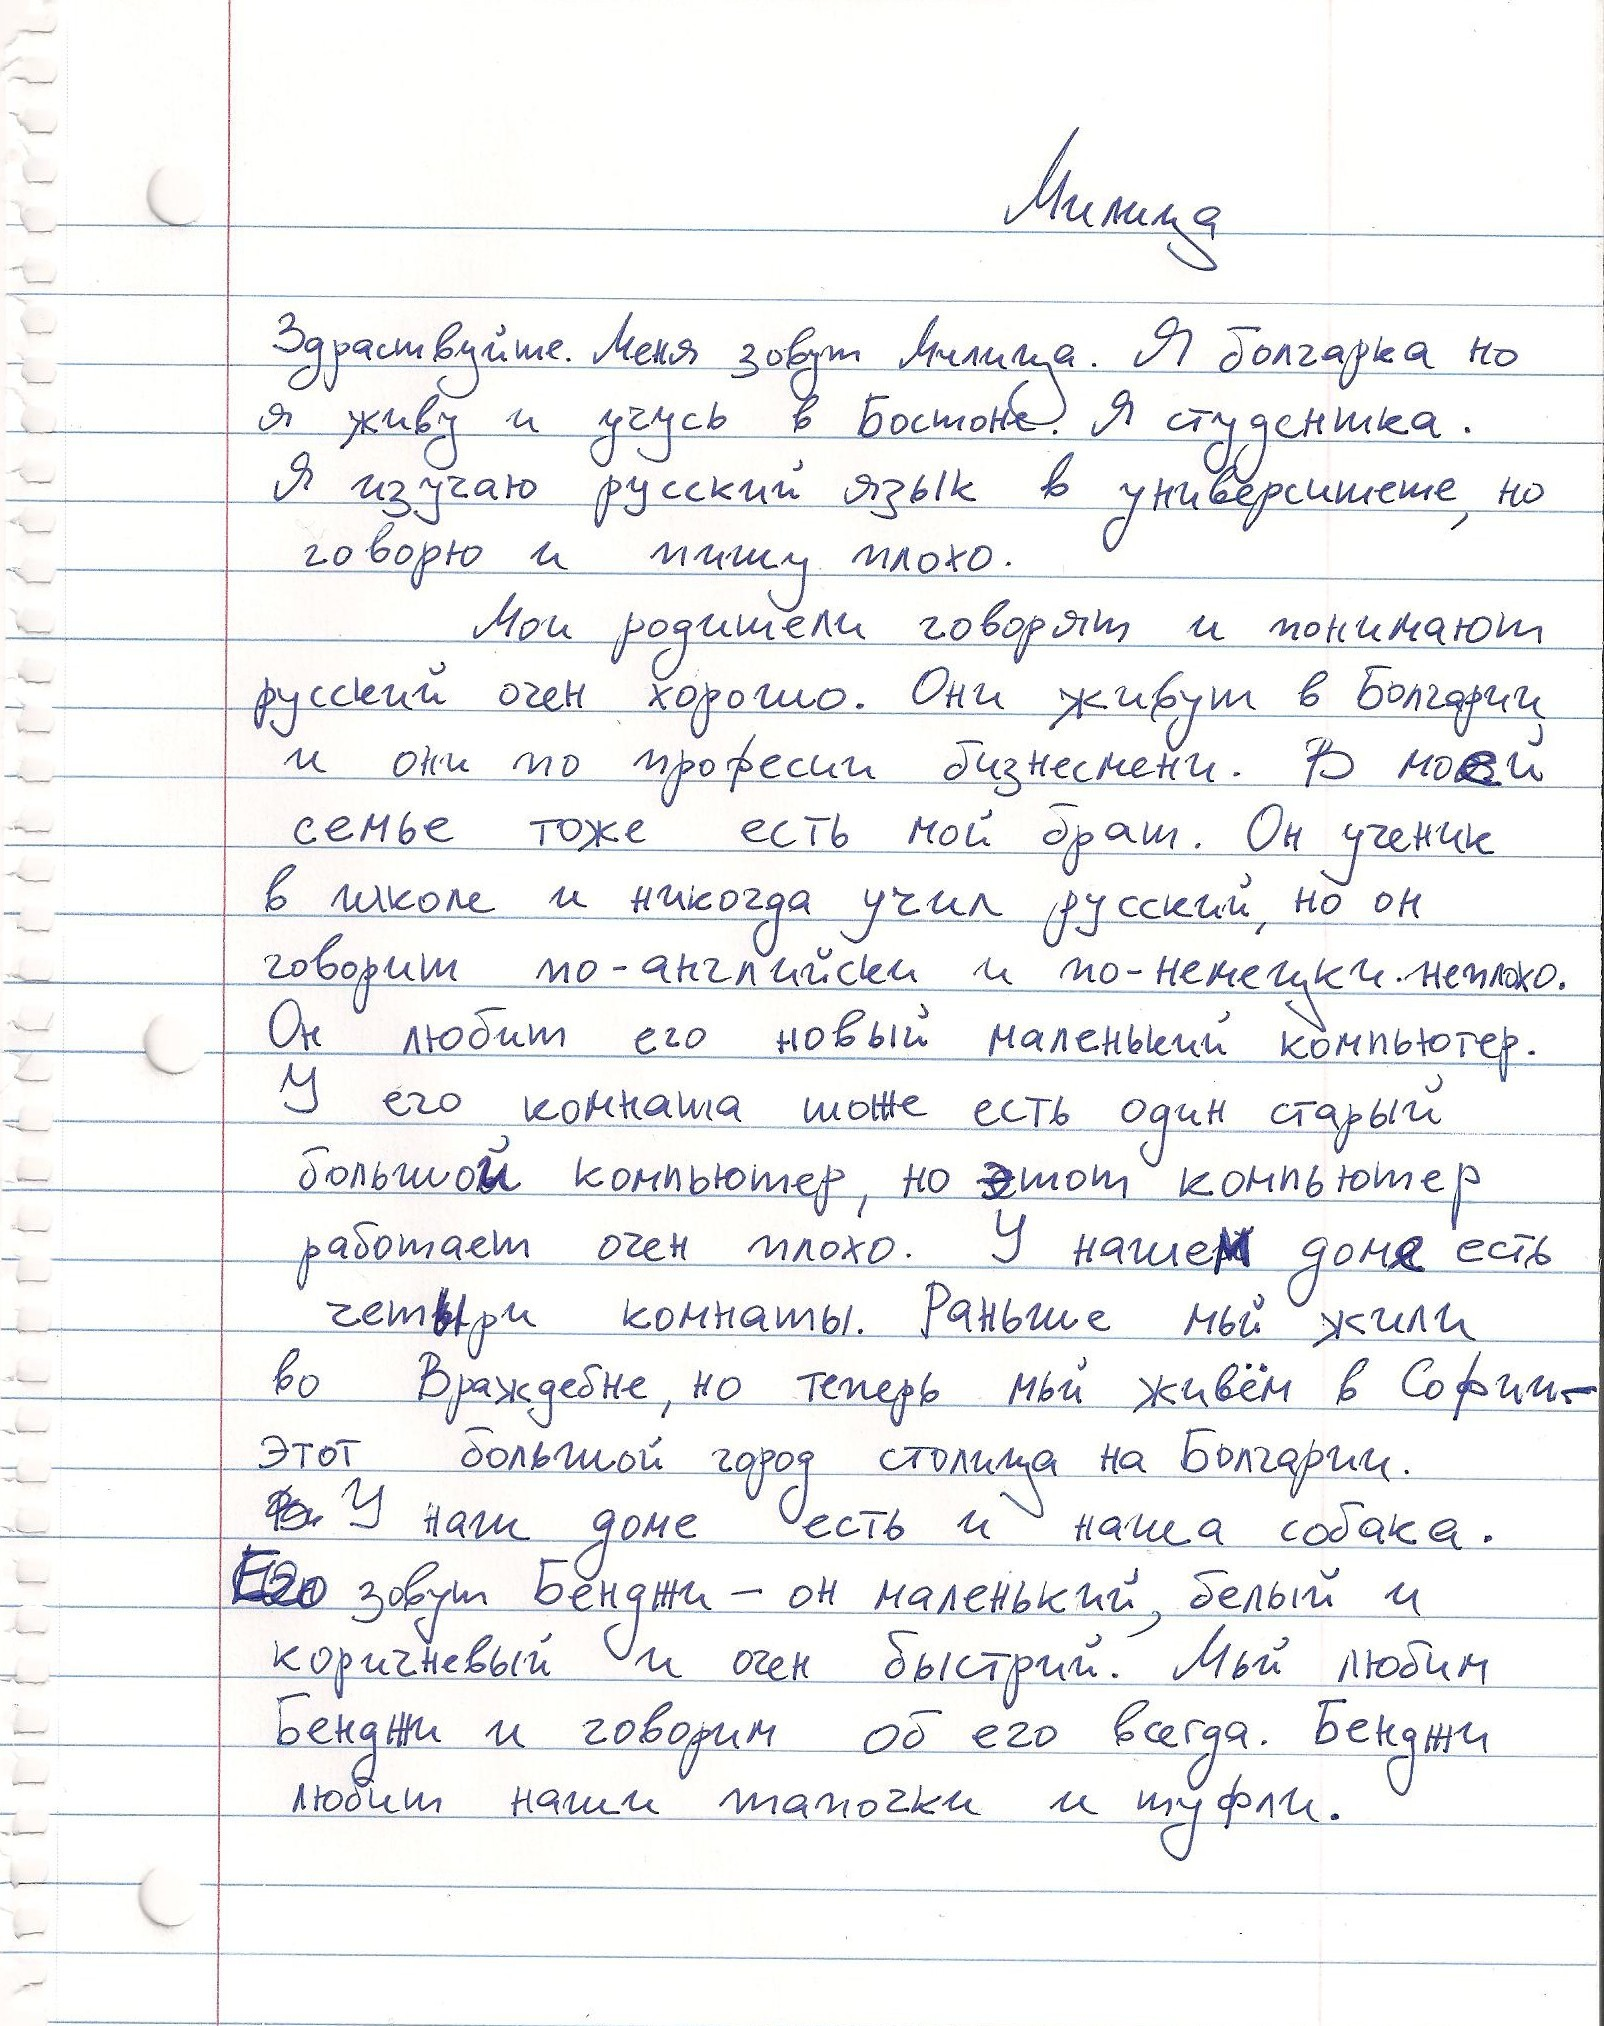 014 Help With My Essay Russian Surprising Me Introduction Sound Better Research Paper For Free Full